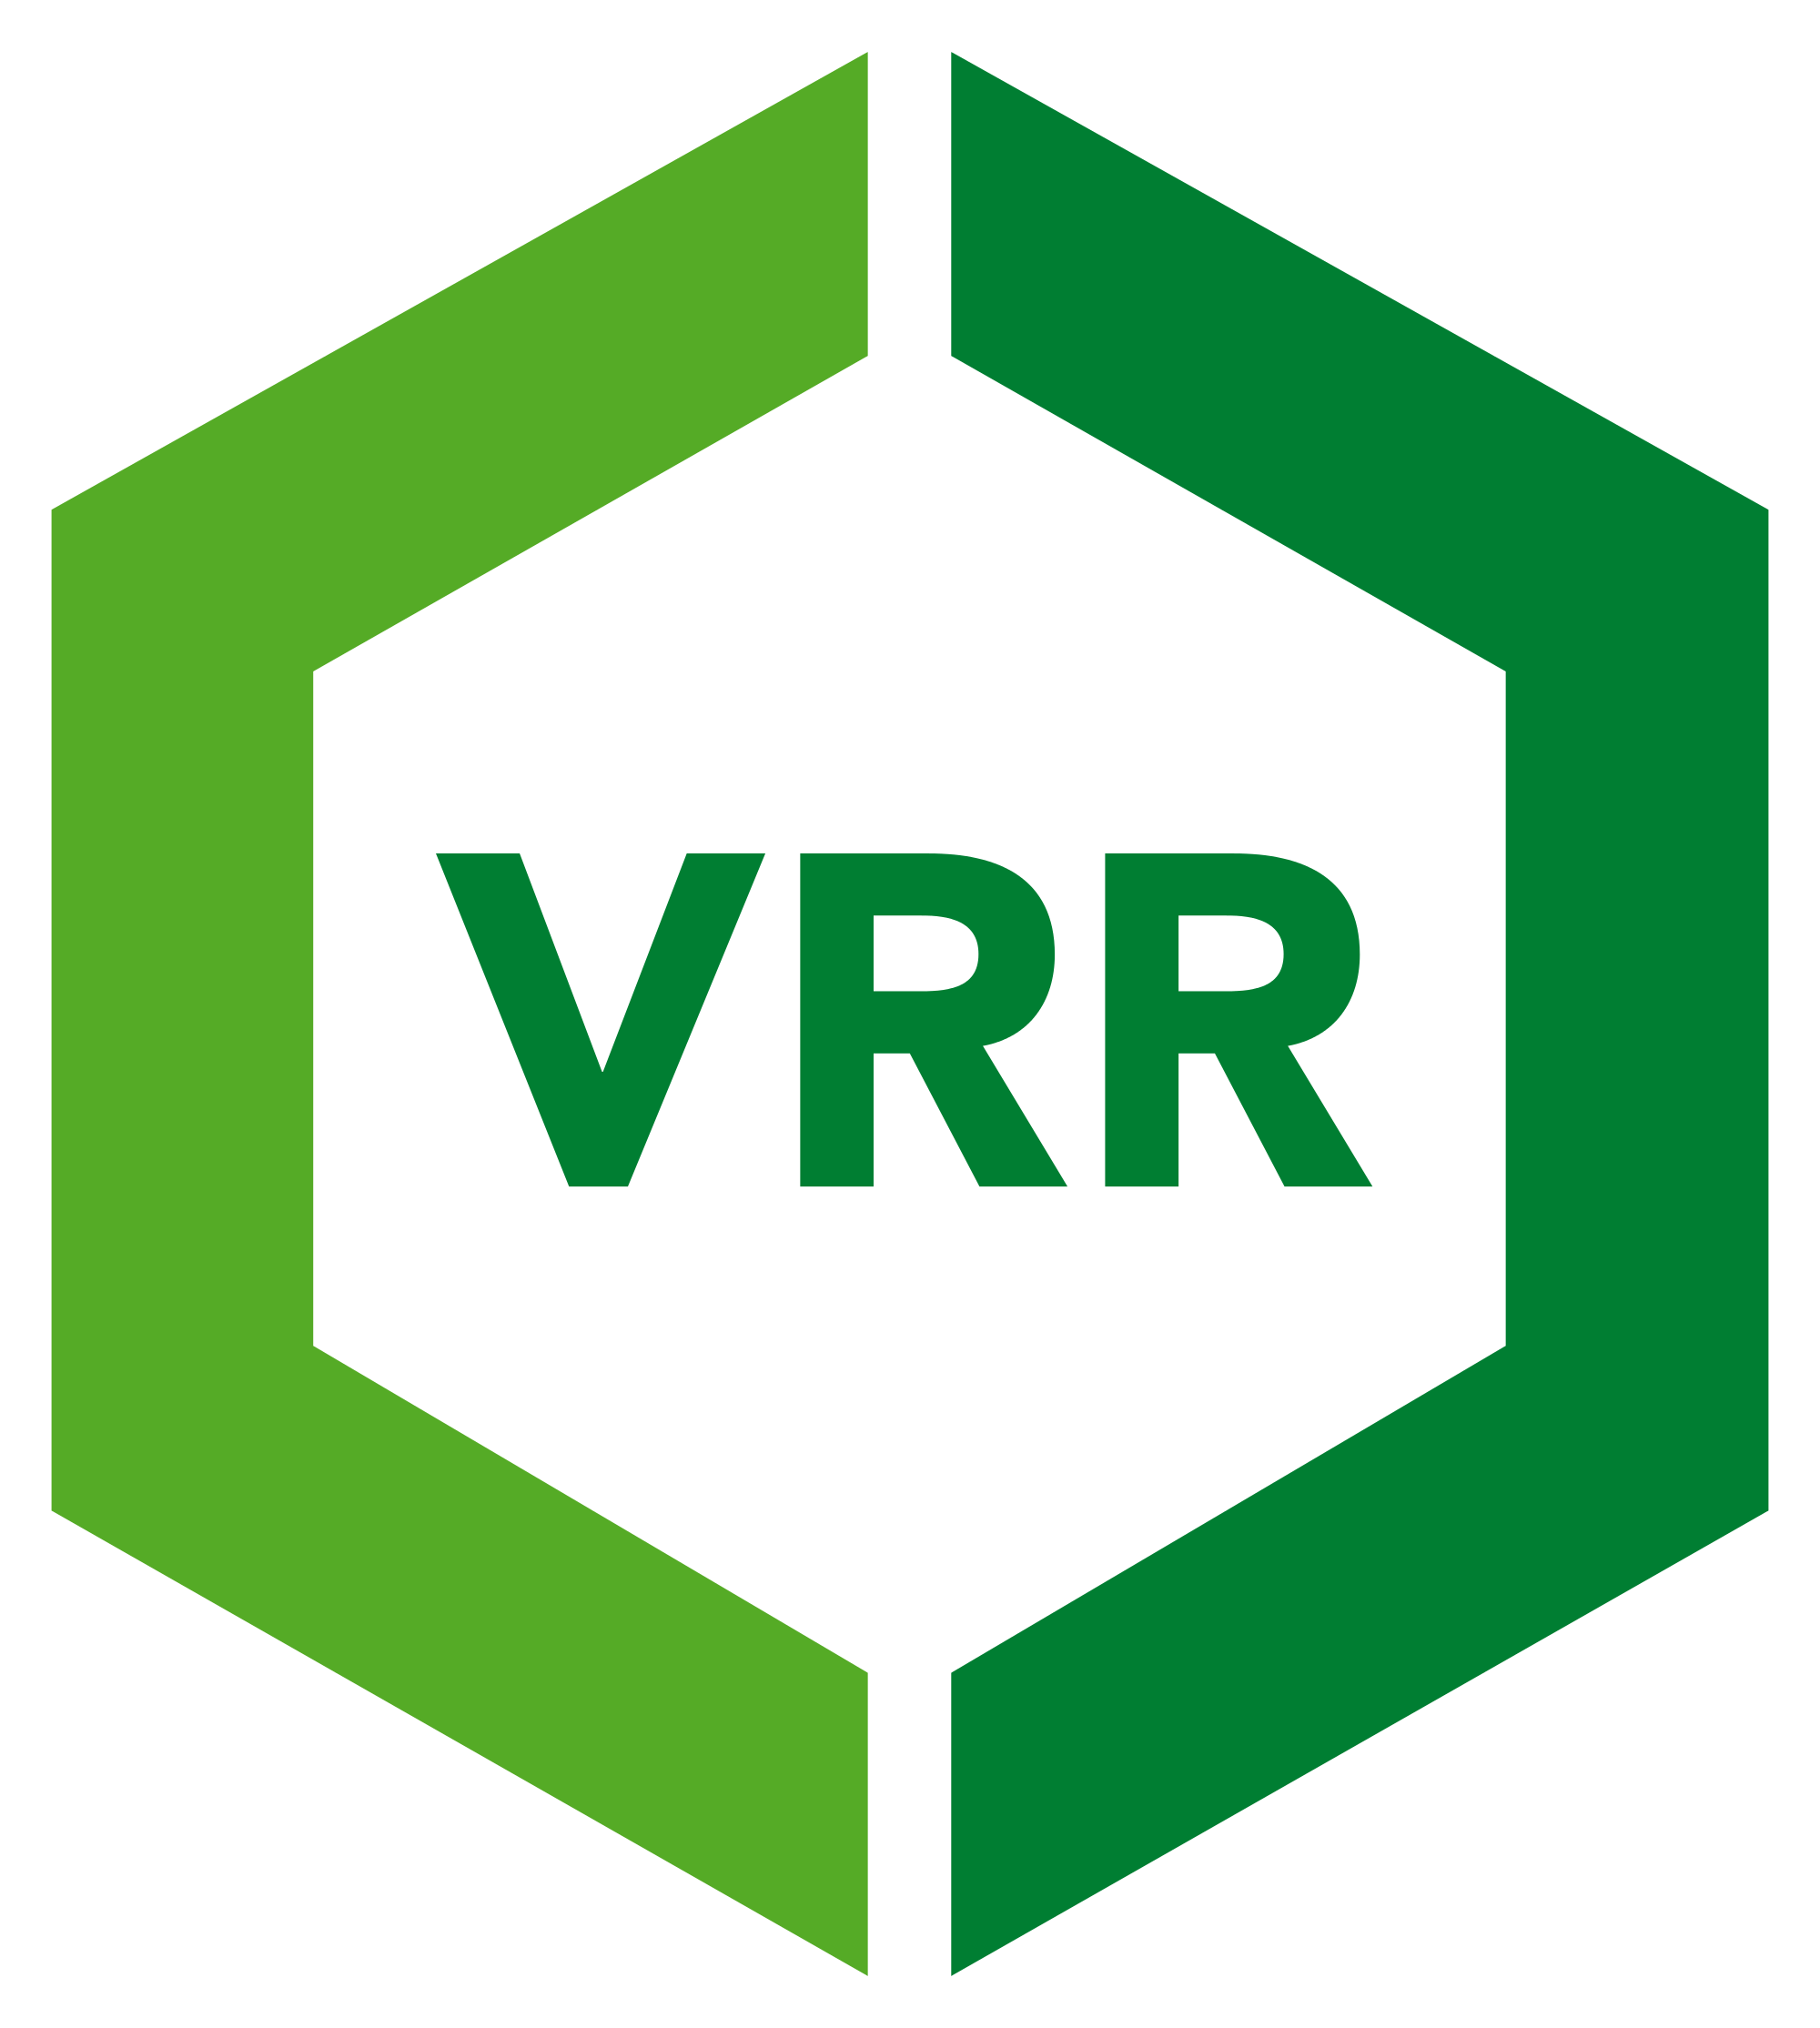 VRR